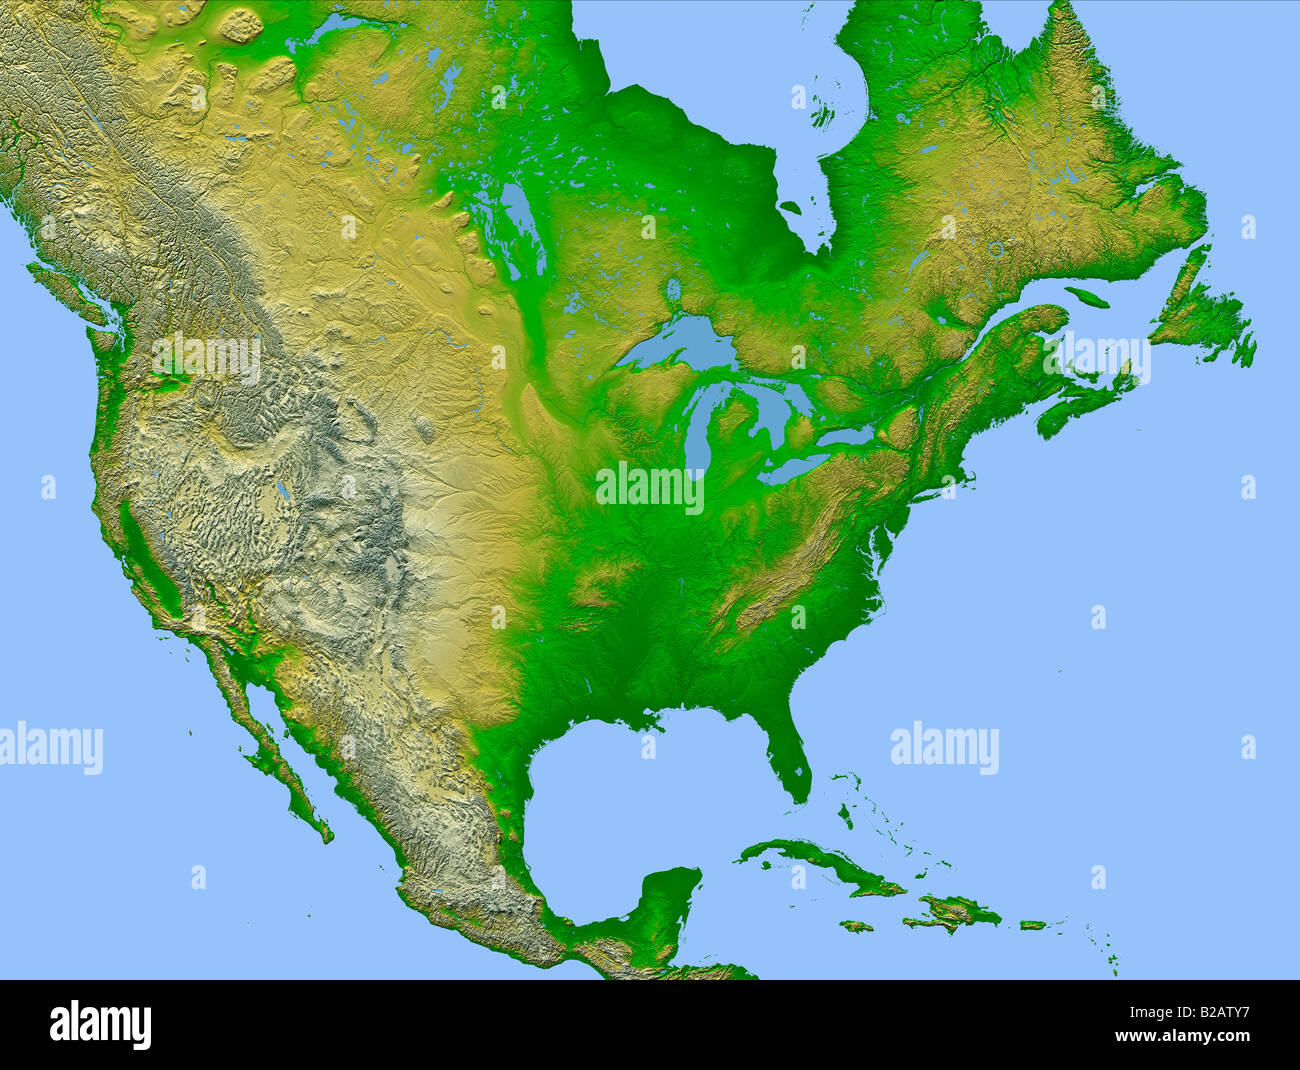 high definition weather satellite view of North America map Stock